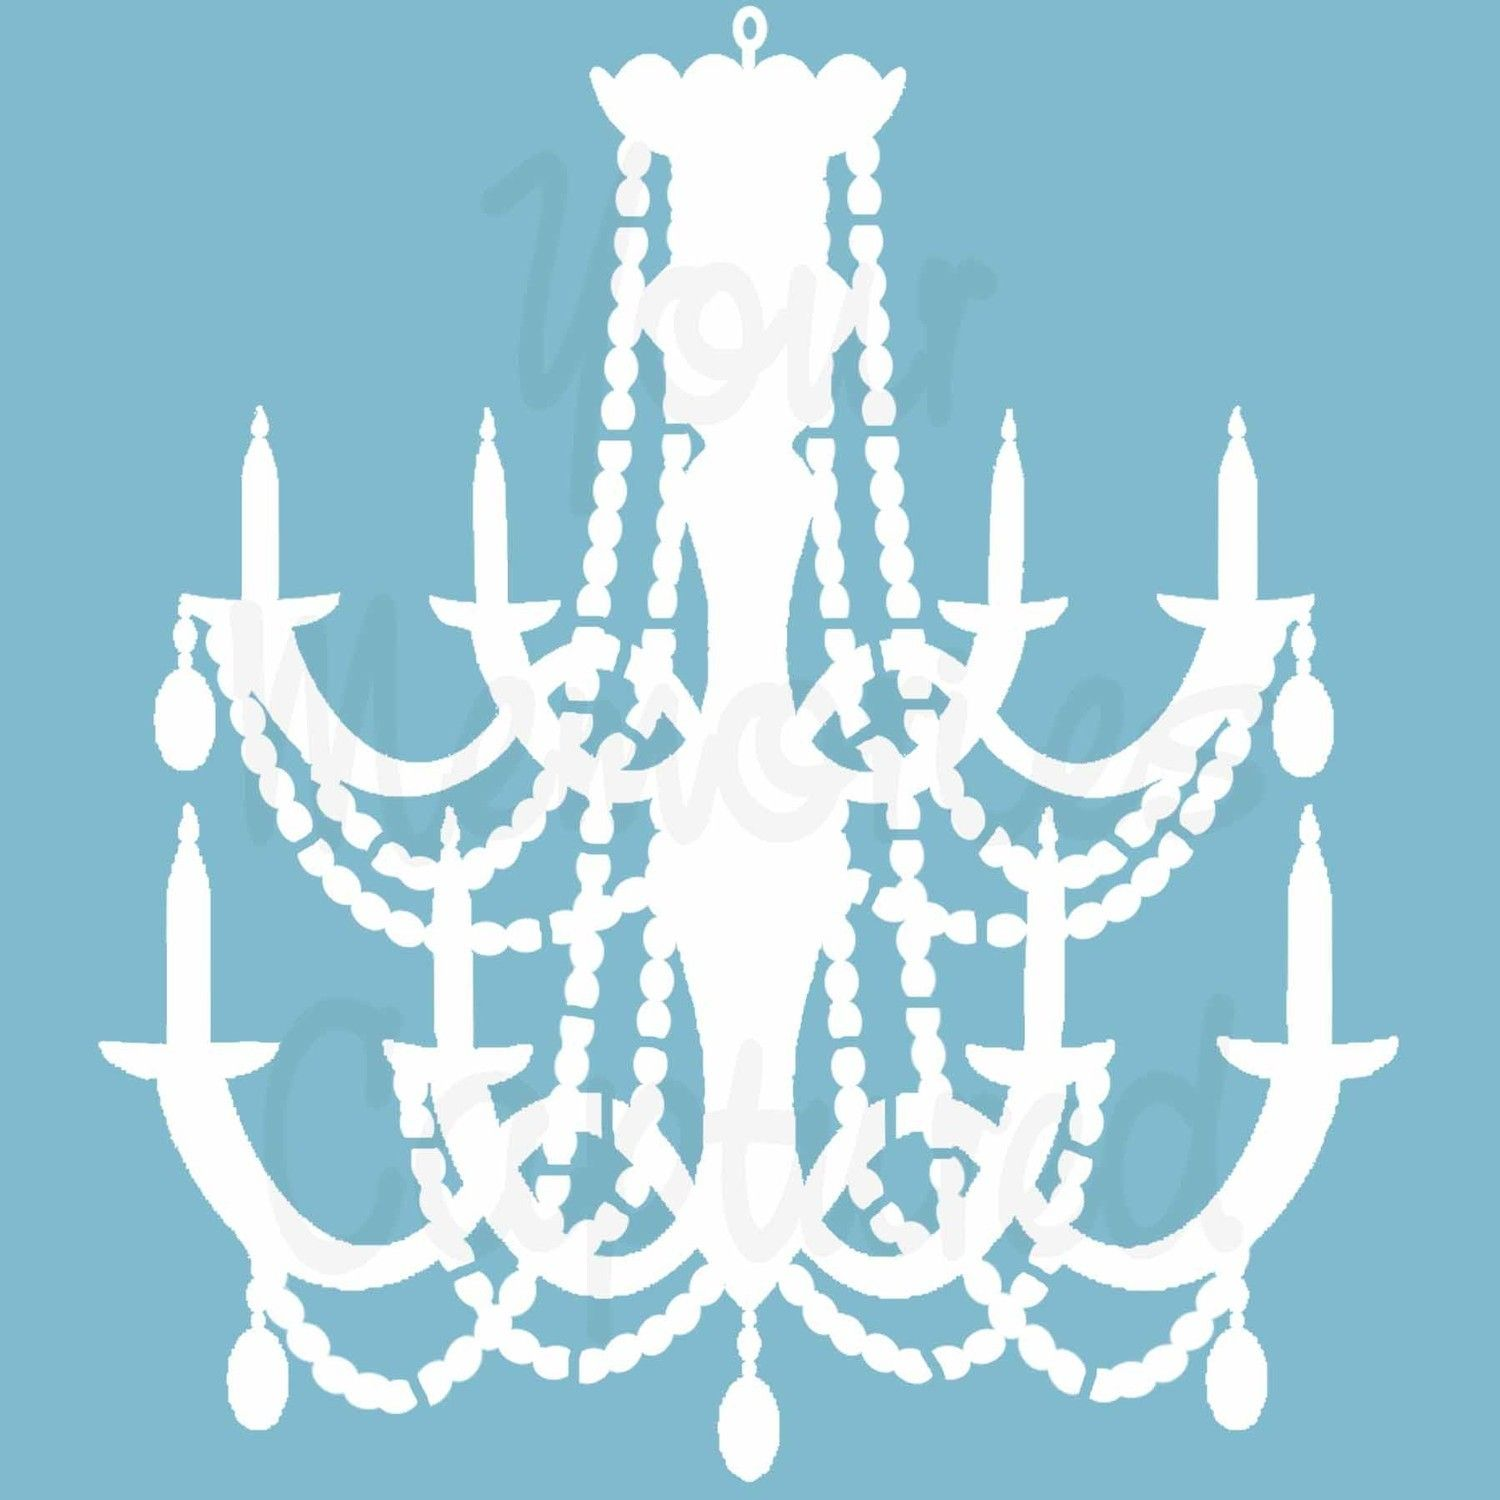 Chandelier template new beginnings pinterest chandeliers chandelier reusable stencil for fabric wood paper canvas walls via etsy mozeypictures Images